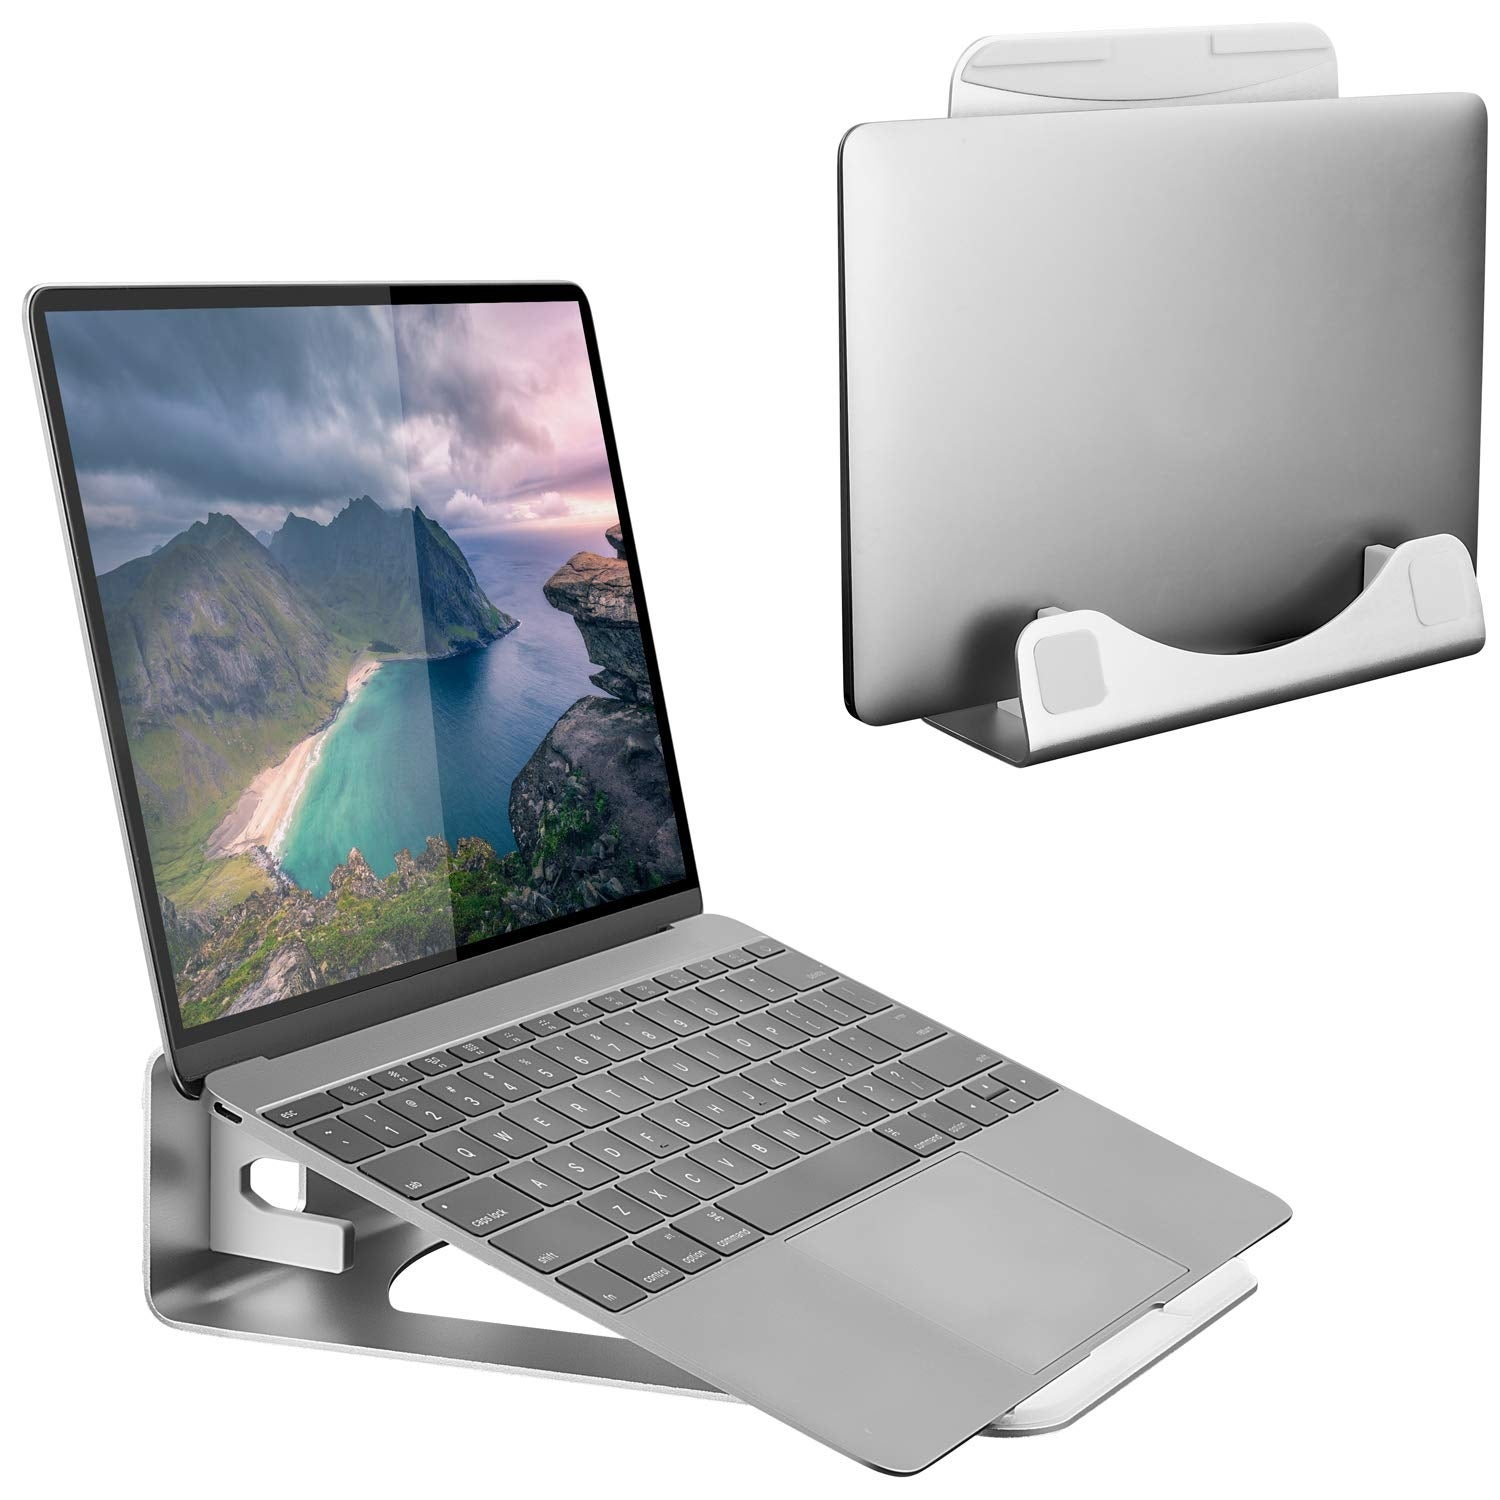 Laptop Stand Adjustable Desk Sit Stand Laptop Mount Stand for MacBook Gray